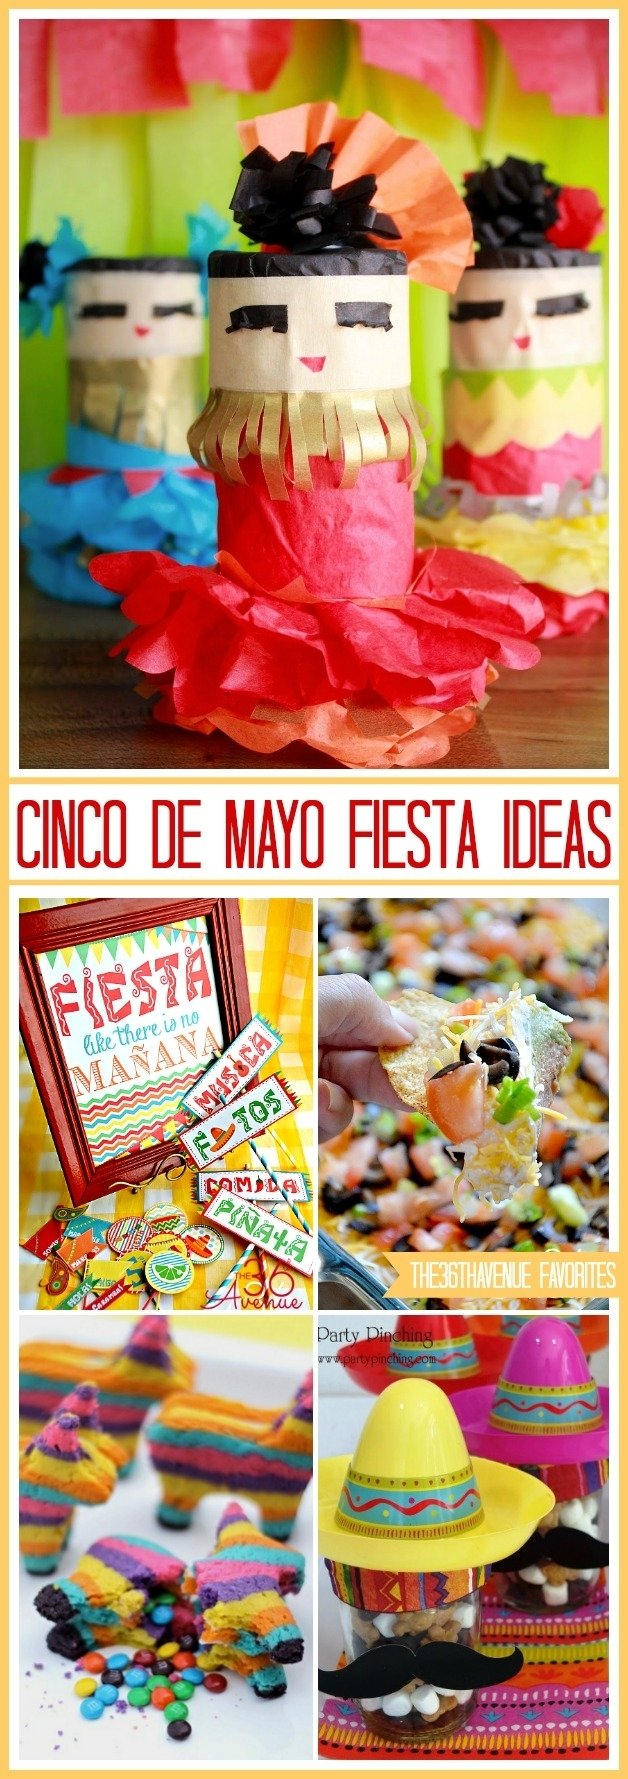 10 Great 5 De Mayo Party Ideas cinco de mayo printables fiesta ideas the 36th avenue 2021